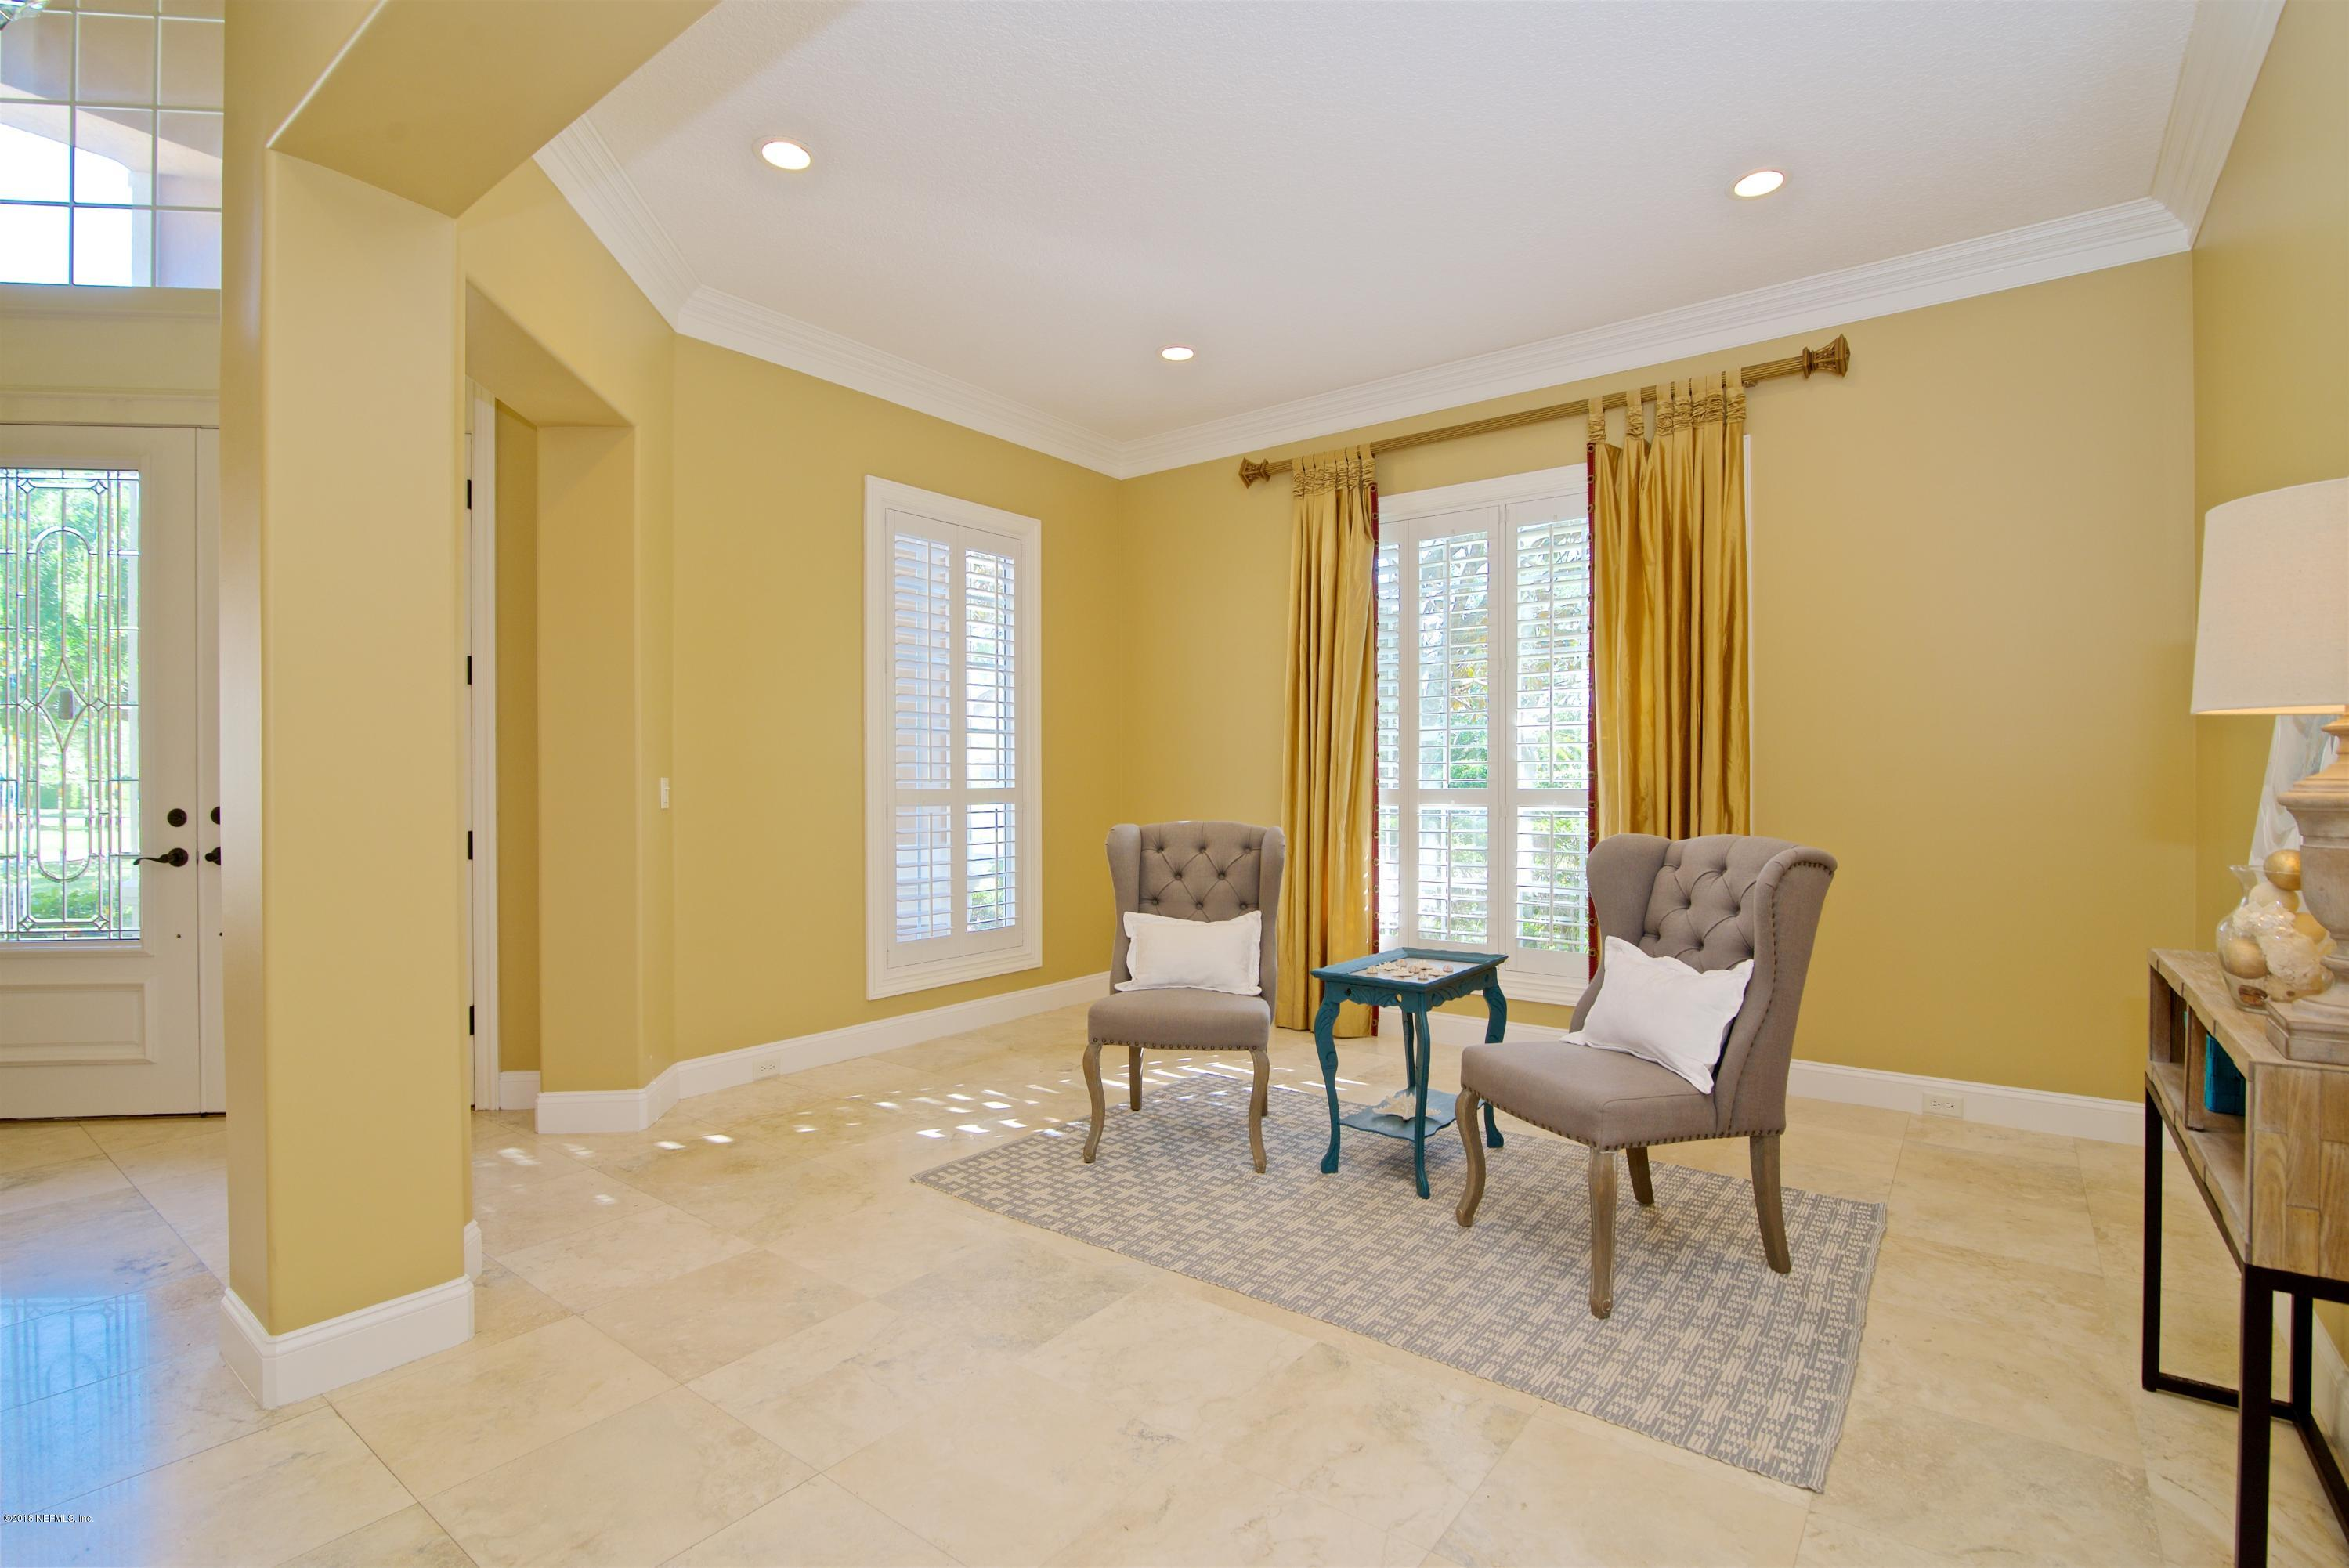 200 CLEARLAKE, PONTE VEDRA BEACH, FLORIDA 32082, 5 Bedrooms Bedrooms, ,4 BathroomsBathrooms,Residential - single family,For sale,CLEARLAKE,929816